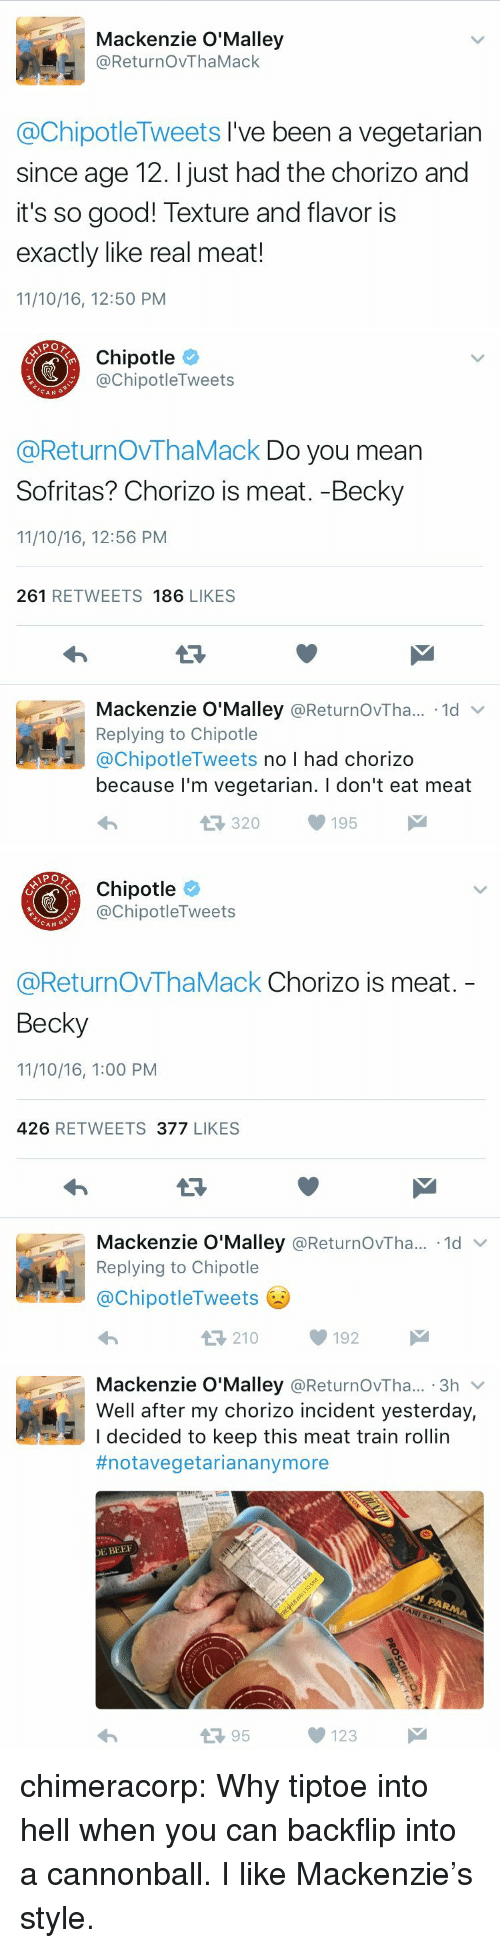 texture: Mackenzie O'Malley  @ReturnOvThaMack  @ChipotleTweets I've been a vegetarian  since age 12. I just had the chorizo and  it's so good! Texture and flavor is  exactly like real meat!  11/10/16, 12:50 PM   Chipotle  @ChipotleTweets  CAN  @ReturnOVThaMack Do you mean  Sofritas? Chorizo is meat. -Becky  11/10/16, 12:56 PM  261 RETWEETS 186 LIKES  Mackenzie O'Malley @ReturnOvTha.. 1d  Replying to Chipotle  @ChipotleTweets no I had chorizo  because l'm vegetarian. I don't eat meat  320195   Chipotle  @ChipotleTweets  CAN G  @ReturnOvThaMack Chorizo is meat.  Becky  11/10/16, 1:00 PM  426 RETWEETS 377 LIKES  Mackenzie O'Malley @ReturnOvTha...-1d ﹀  Replying to Chipotle  @ChipotleTweets  わ  210192   Mackenzie O'Malley @ReturnOvTha... 3h v  Well after my chorizo incident yesterday,  I decided to keep this meat train rollin  #notavegetariananymore  E BEE  13 95  123 chimeracorp:  Why tiptoe into hell when you can backflip into a cannonball. I like Mackenzie's style.